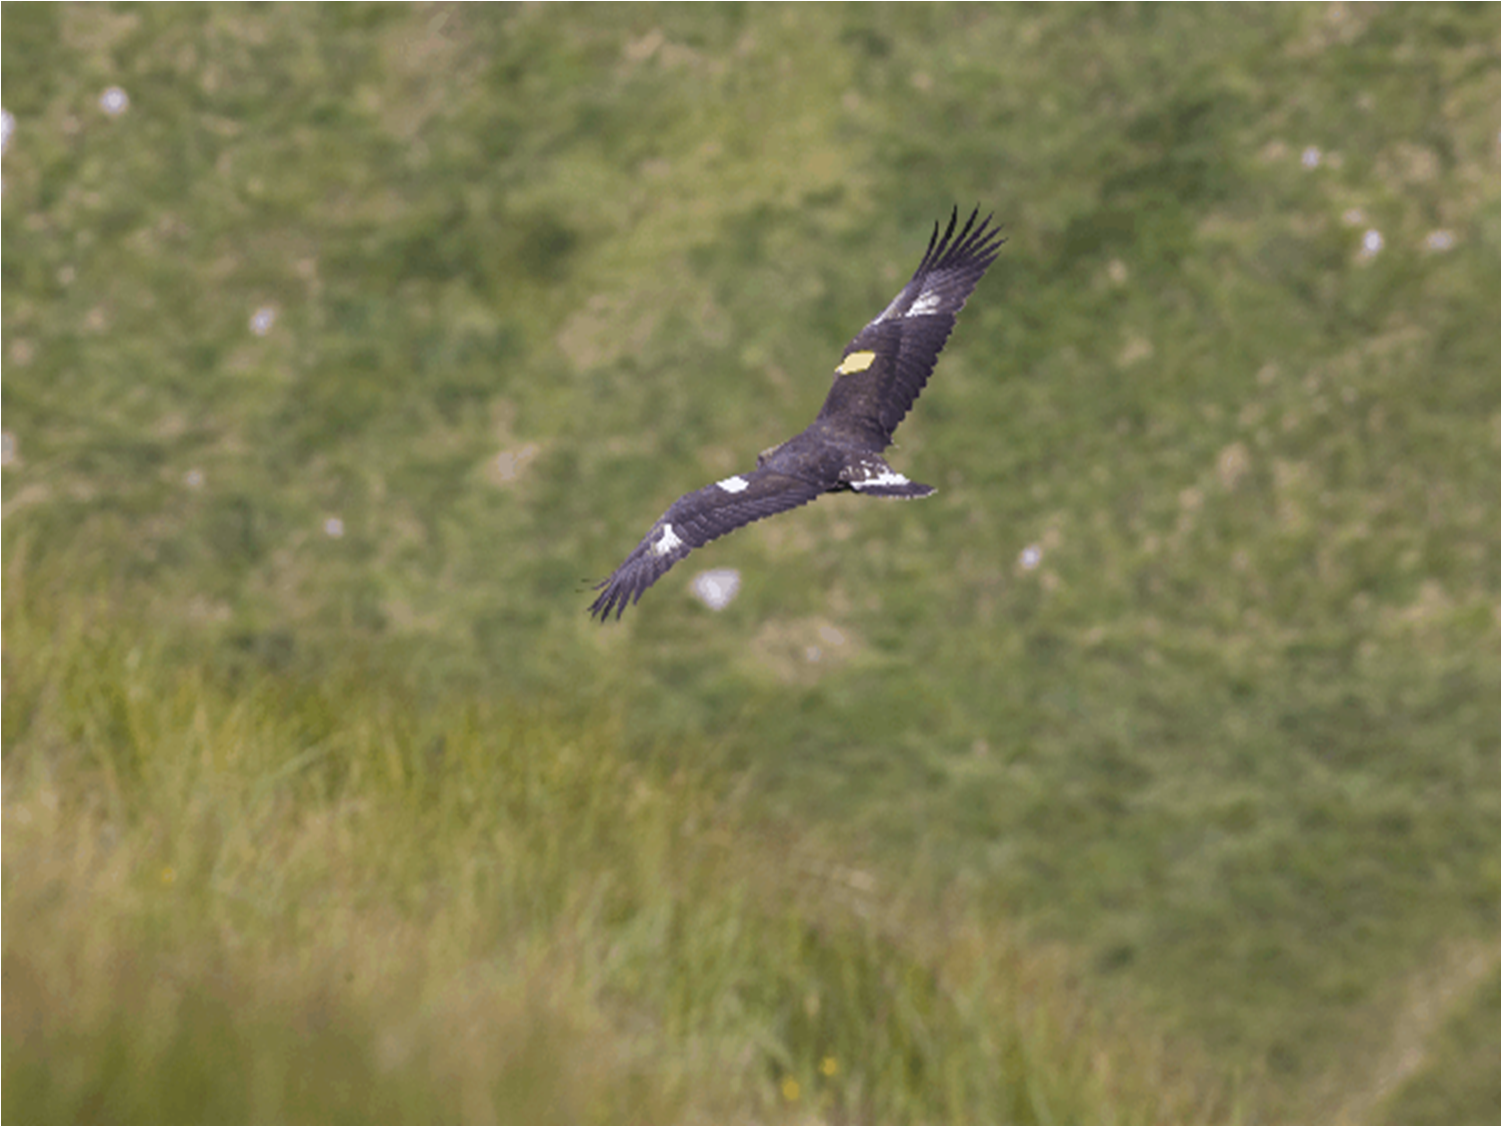 A golden eagle soars above the hills of Donegal